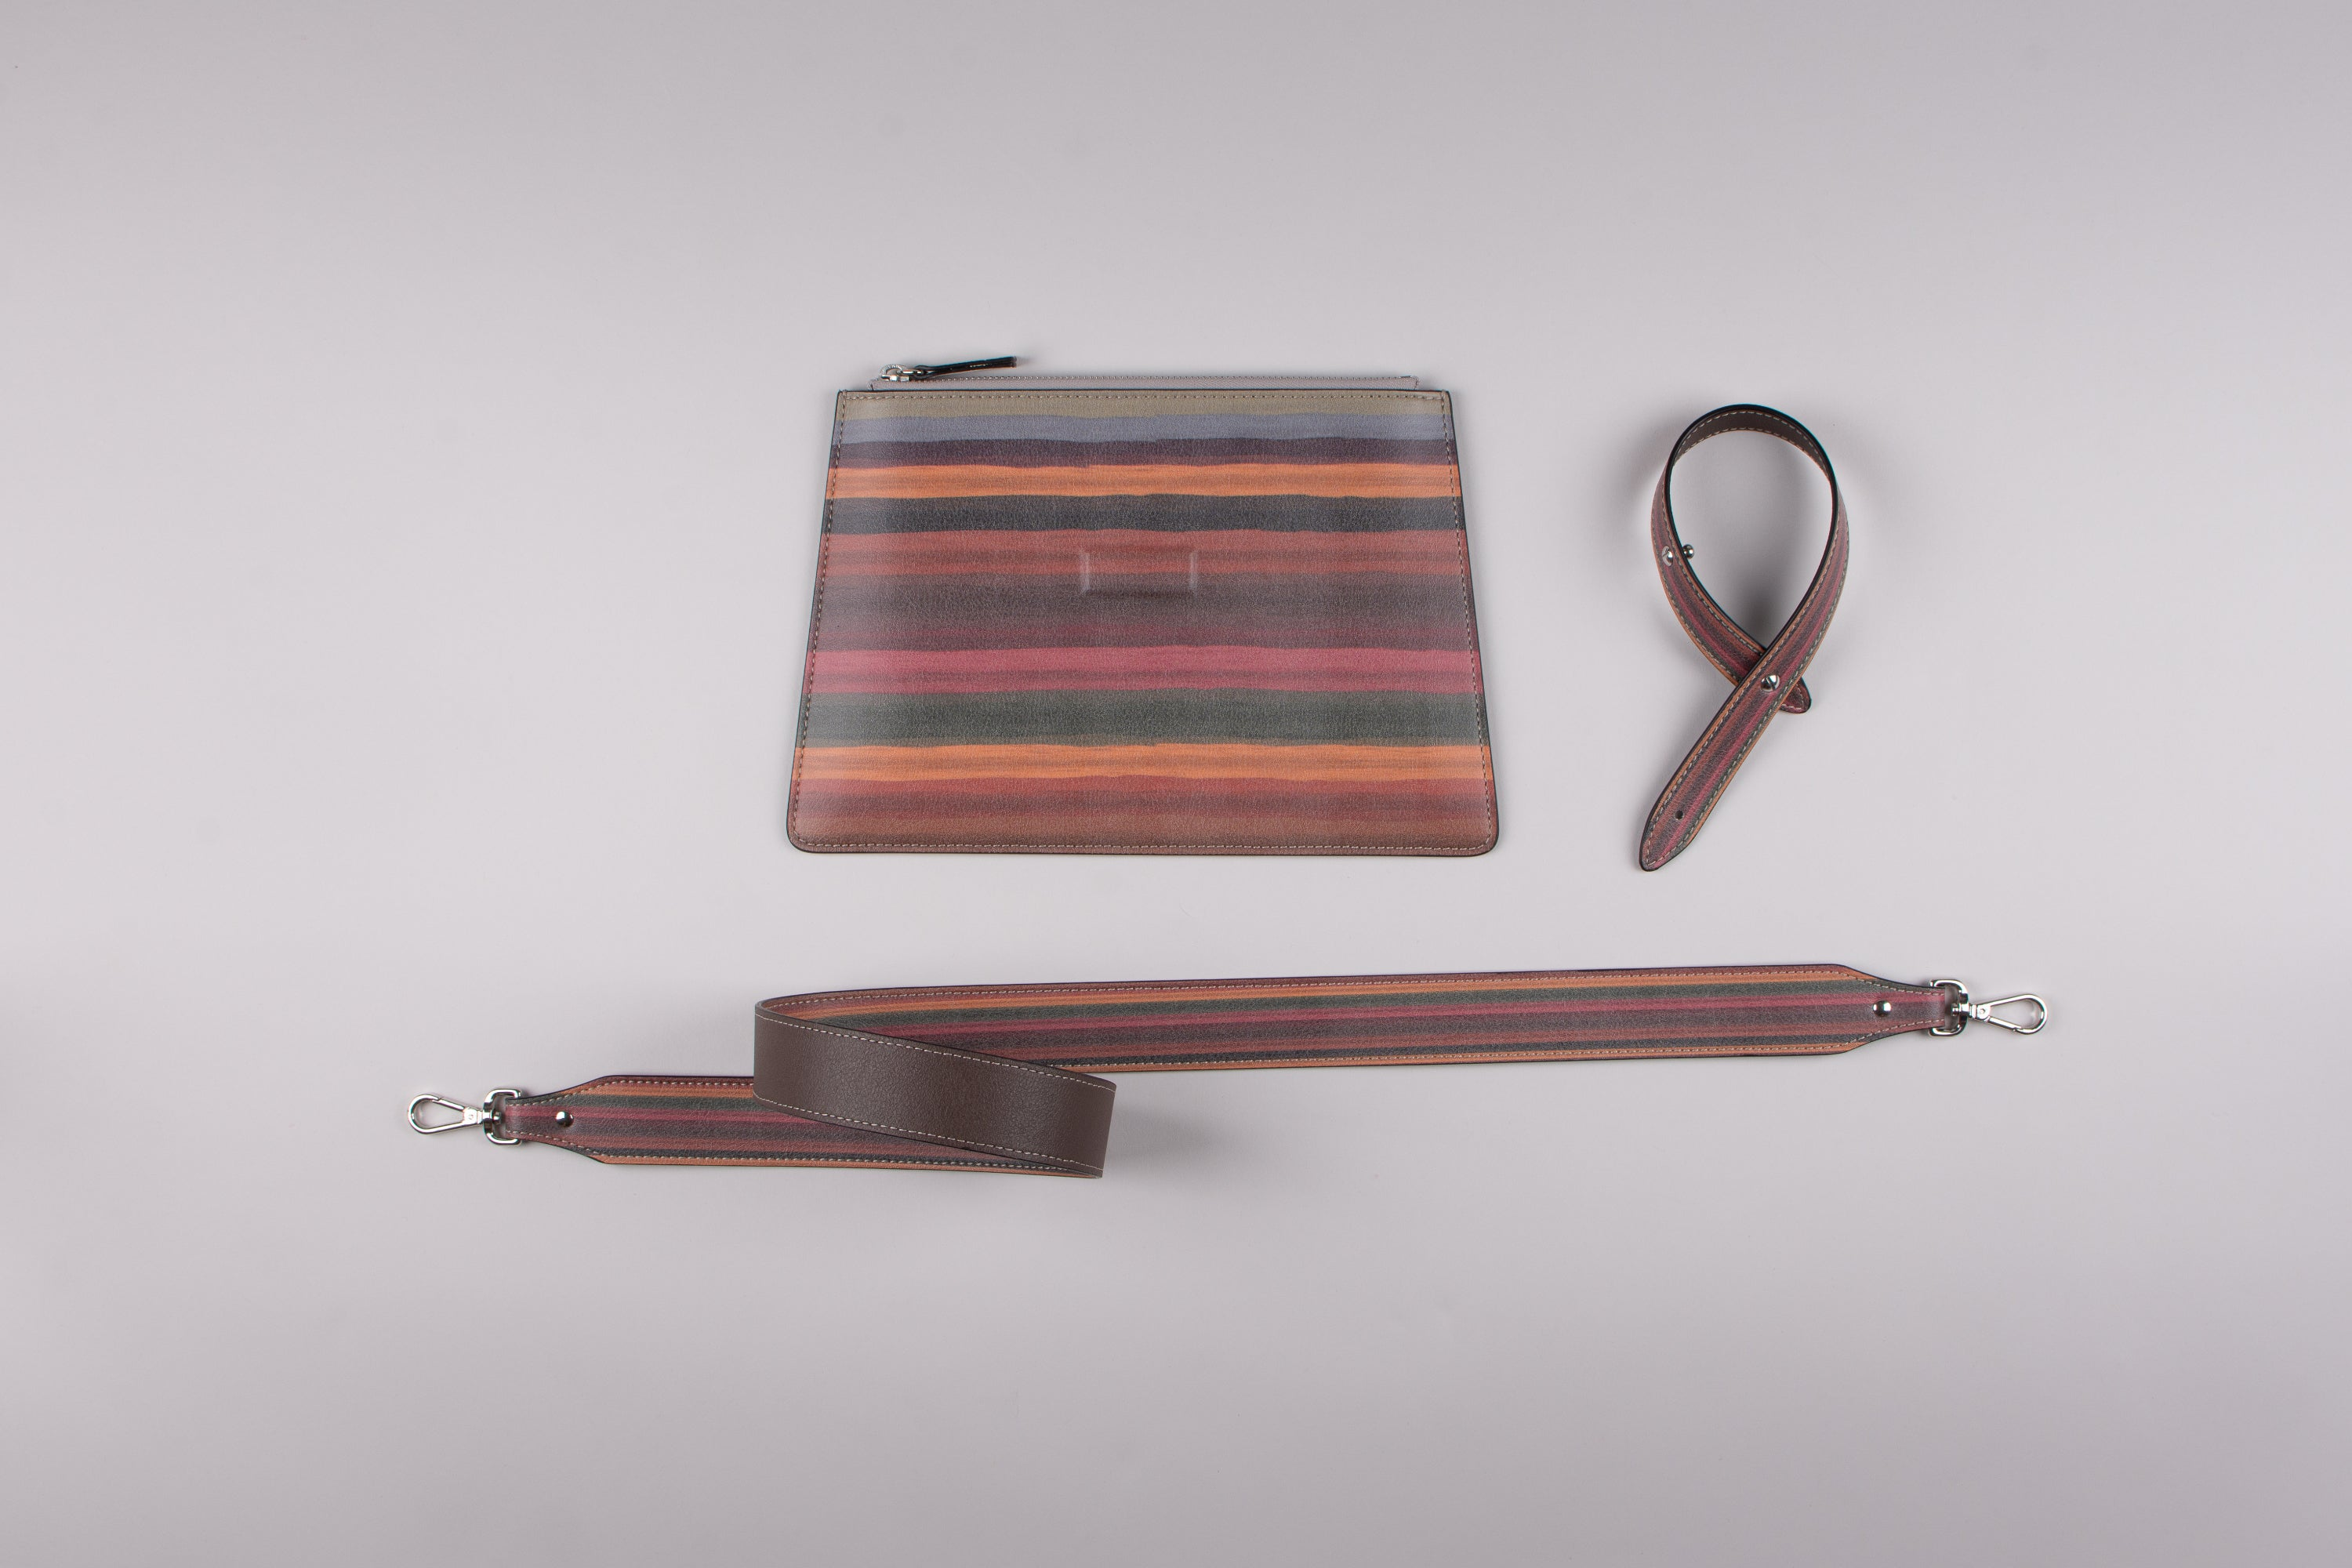 happy genie bag, happy genie, luxury bag, apple bag, apple skin, apple leather, vegan leather, multifunctional bag, clutch set, stripes, innovative material.